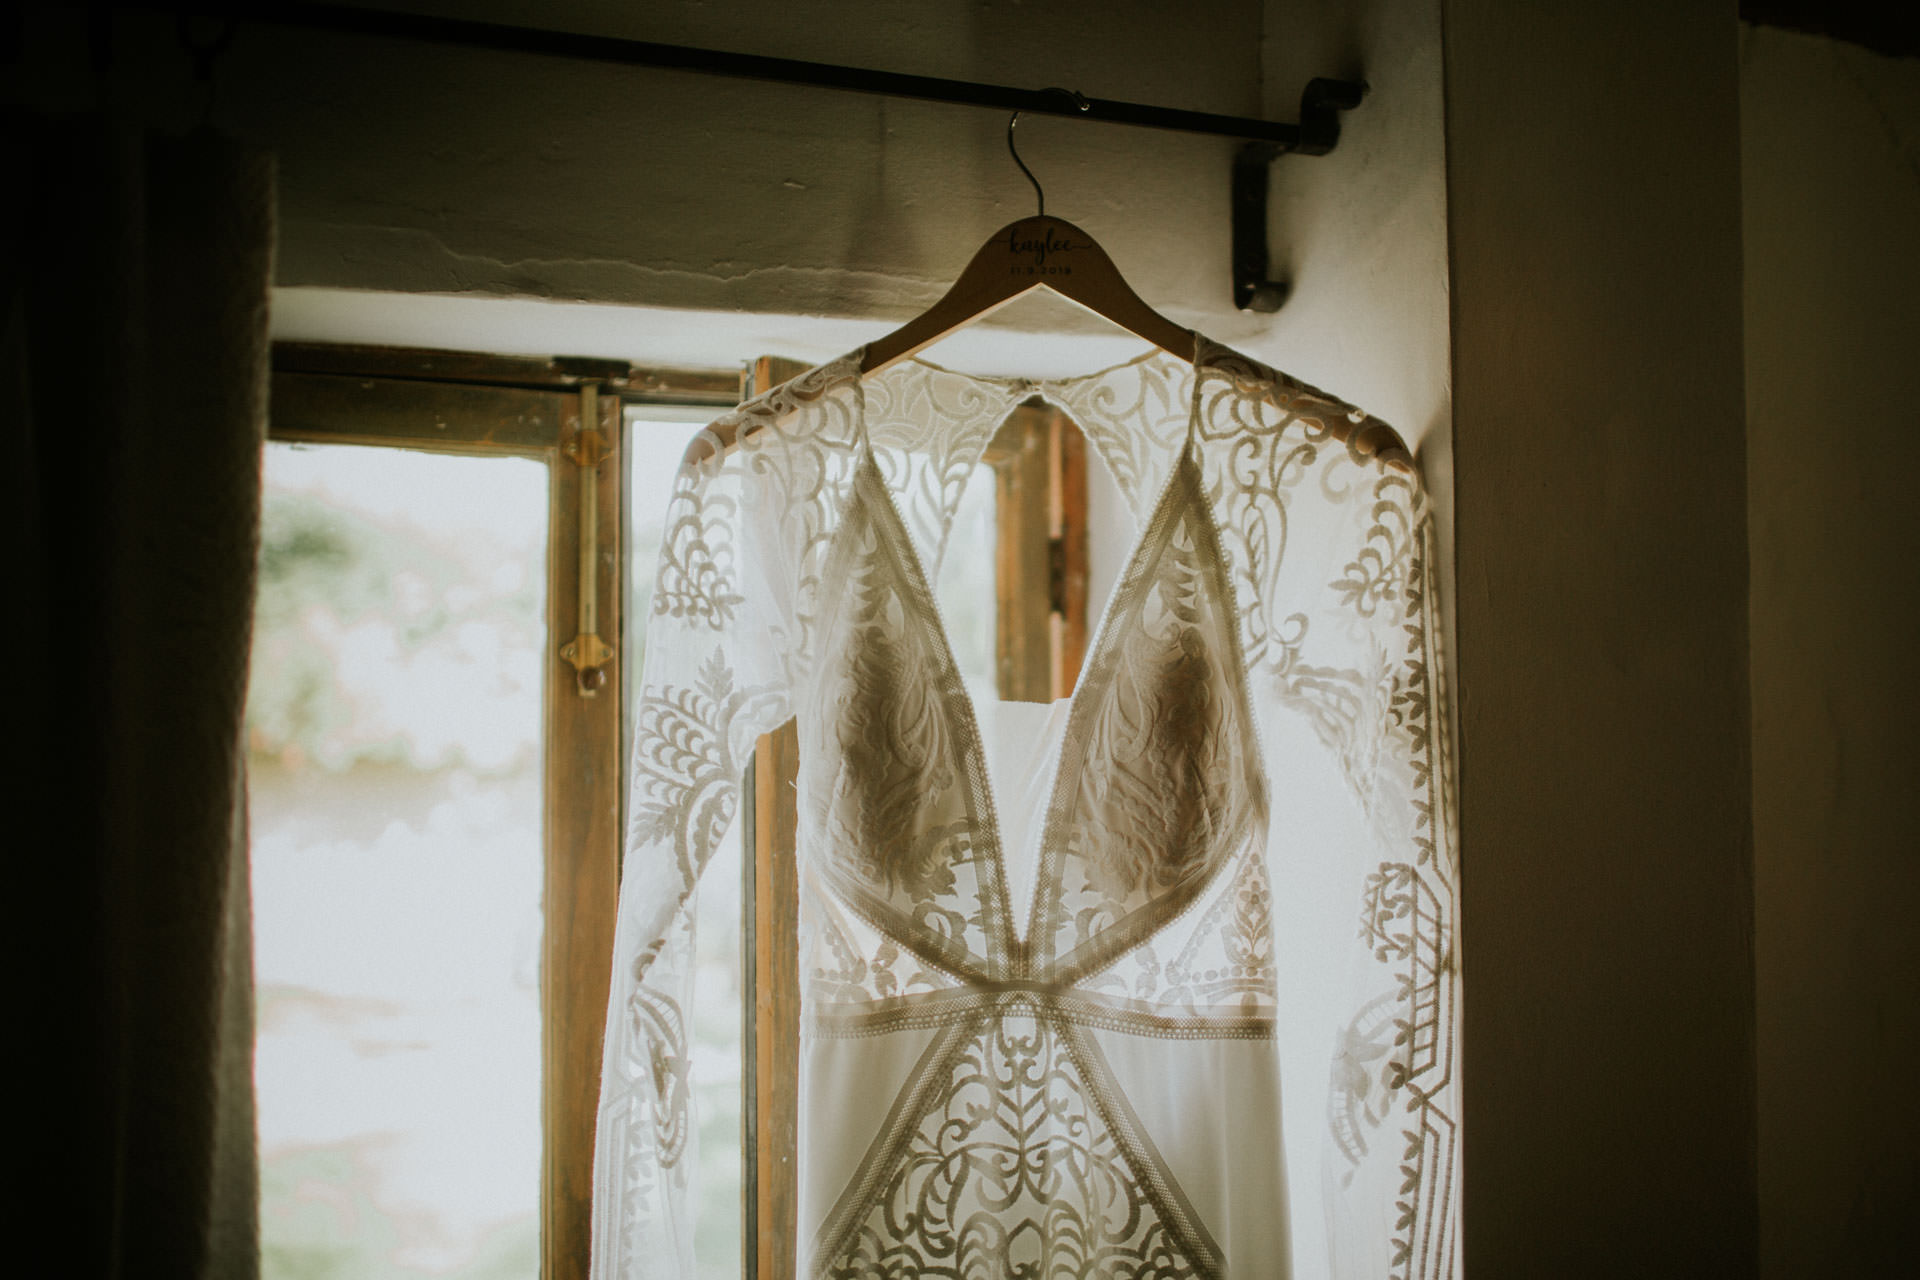 bohemian style lace wedding dress hanging from a window